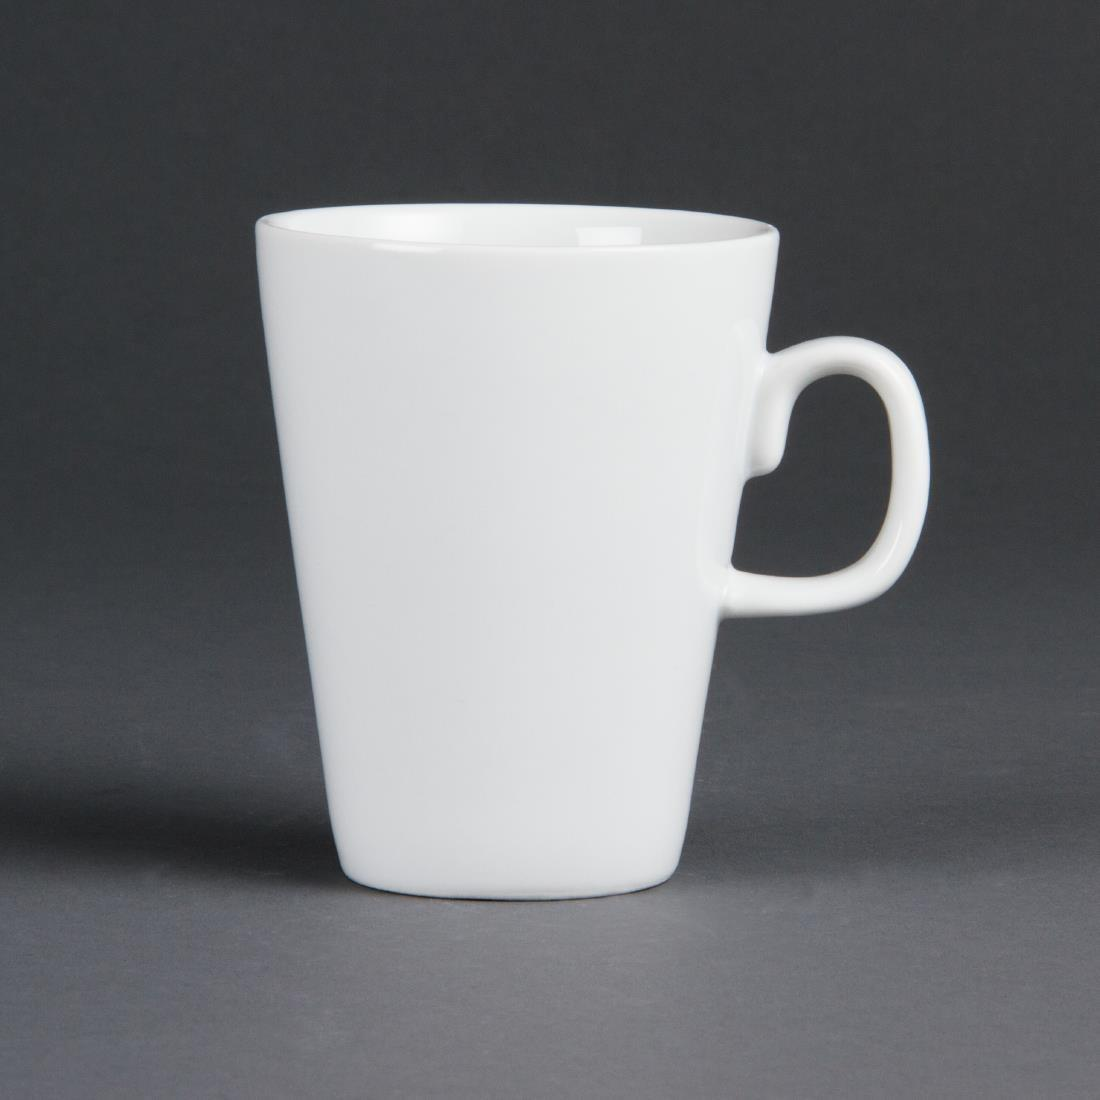 Olympia Whiteware Latte Mugs 310ml 11oz